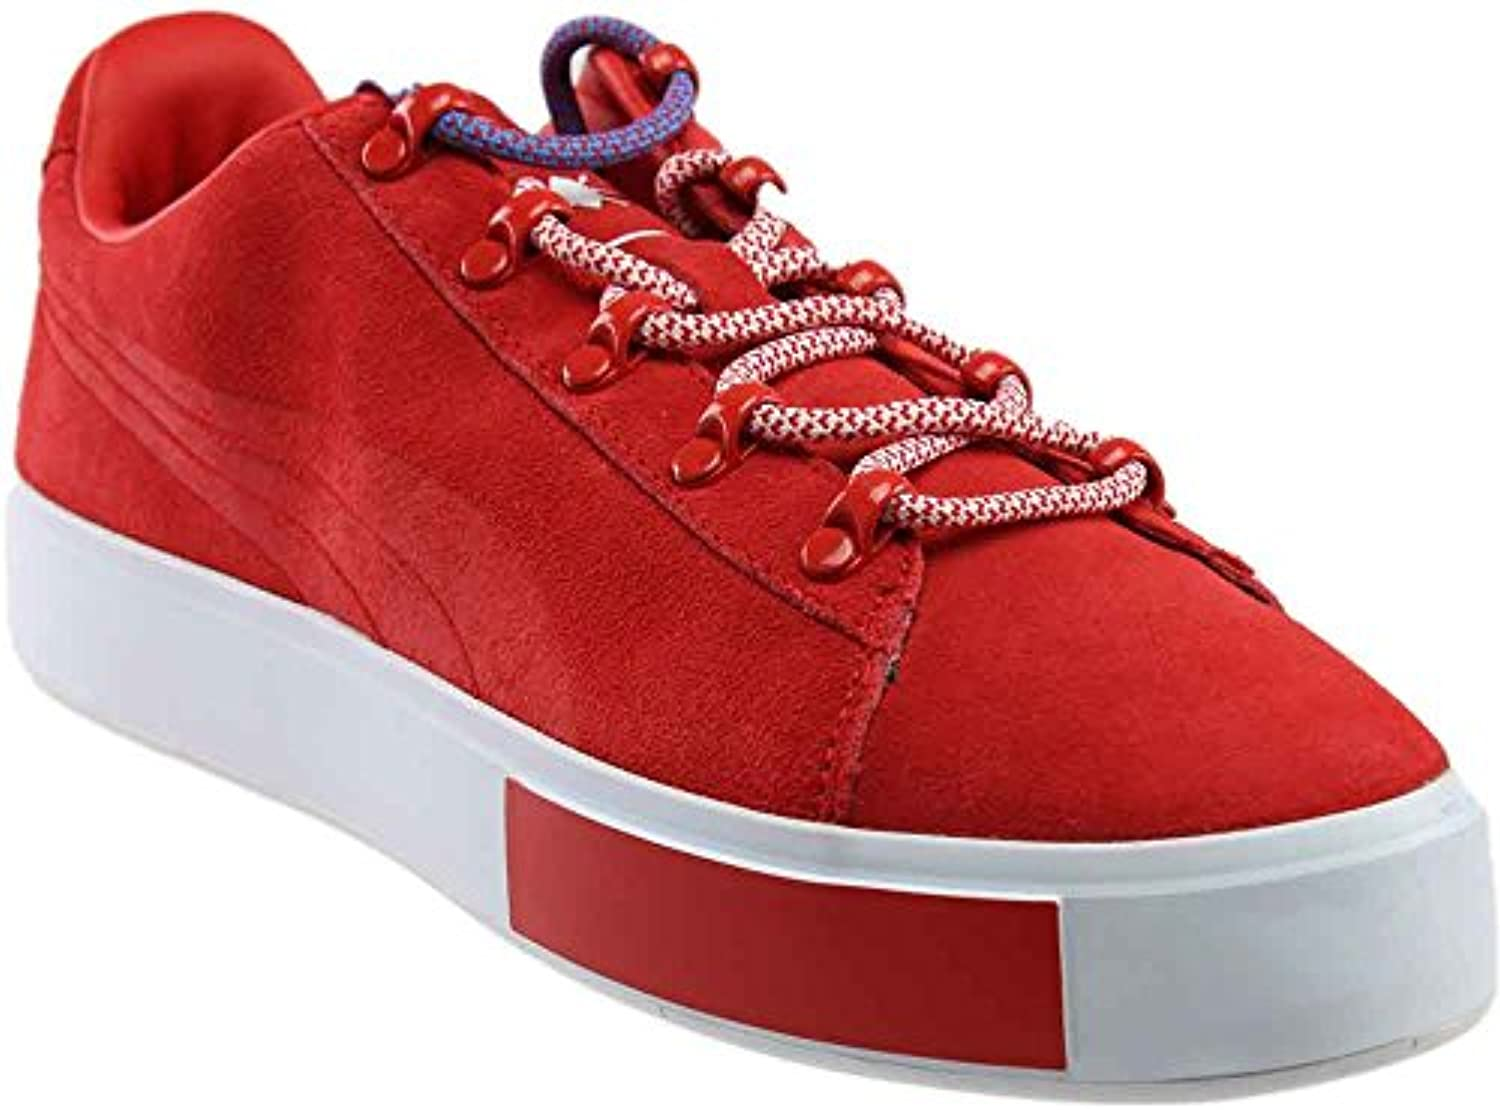 PUMA Men's X DP Court Platform S High Risk Red Ankle High Fashion Sneaker   10.5M